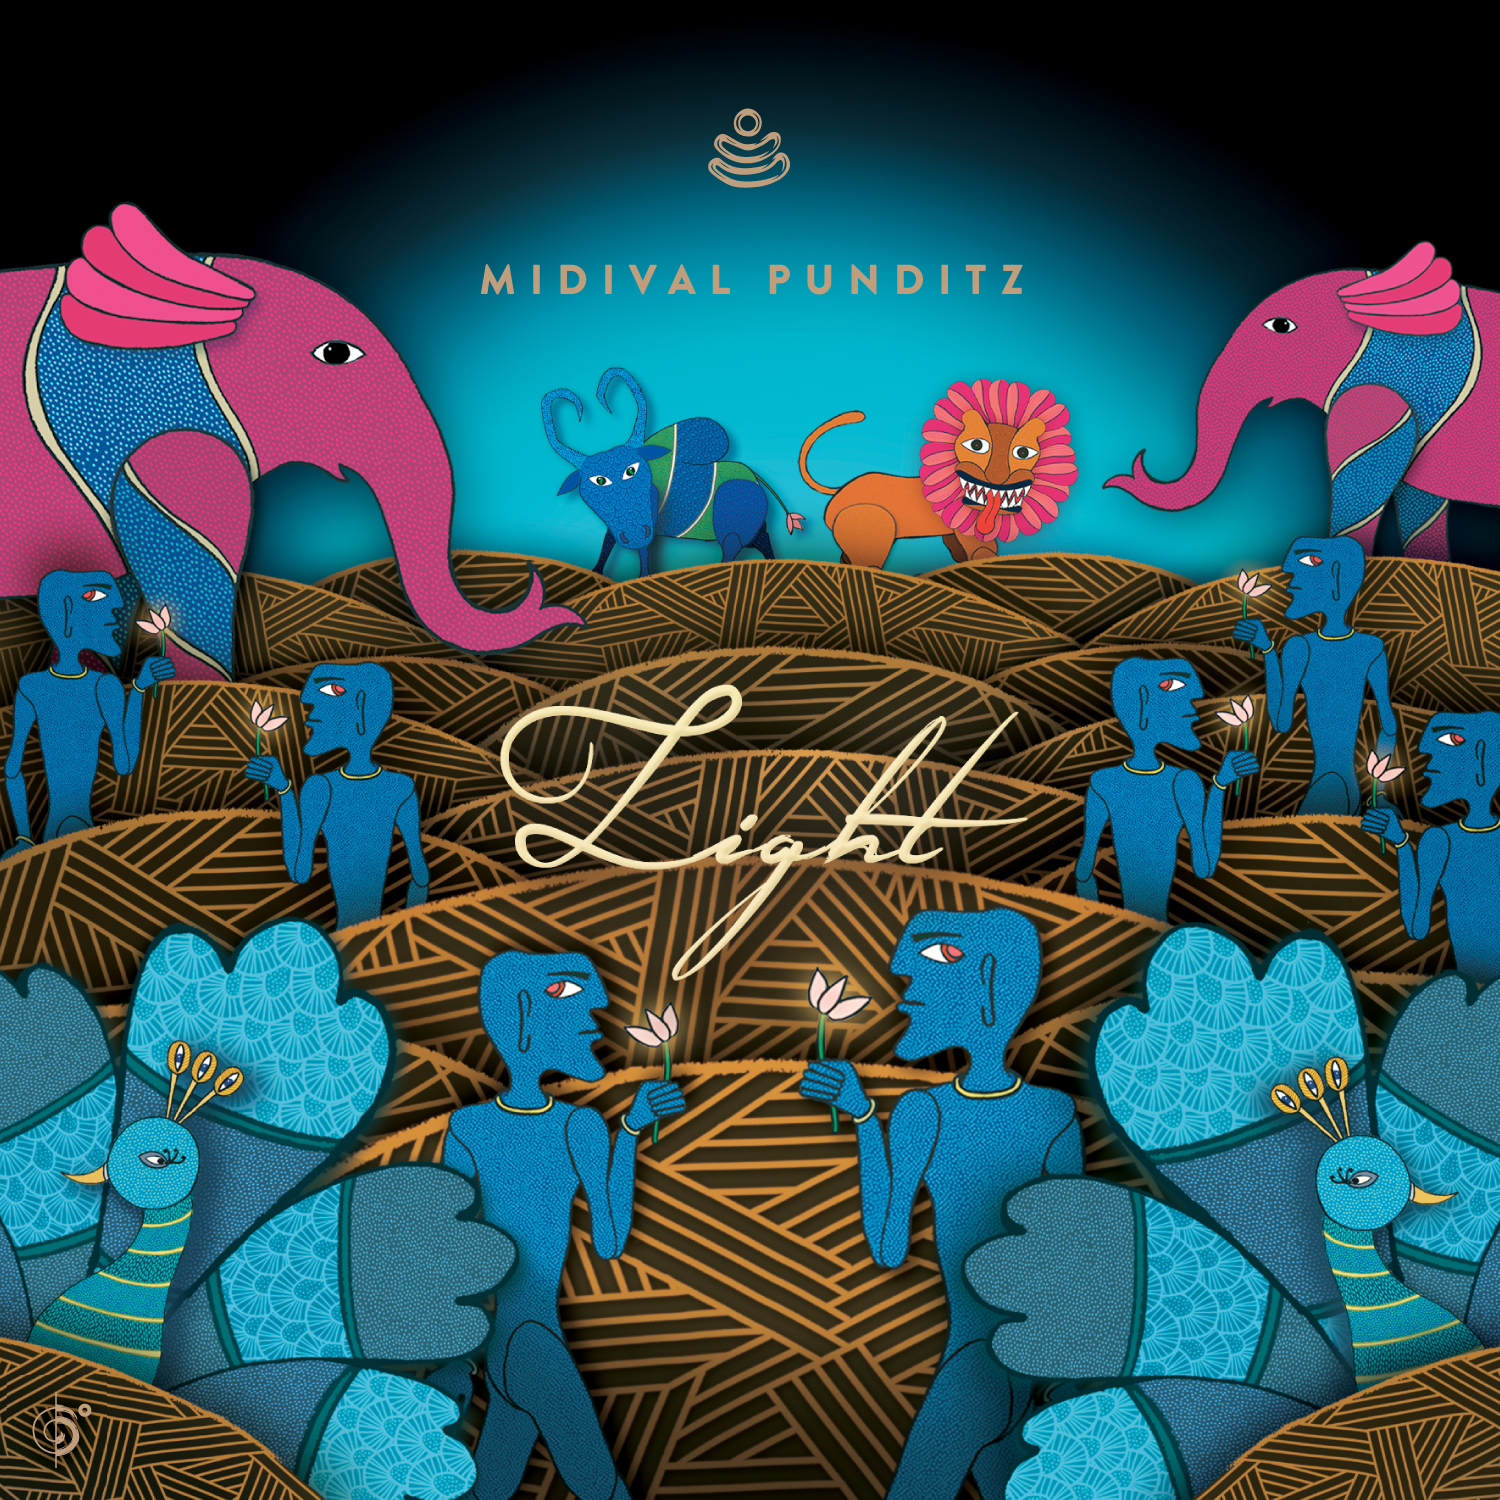 Midival Punditz – Light